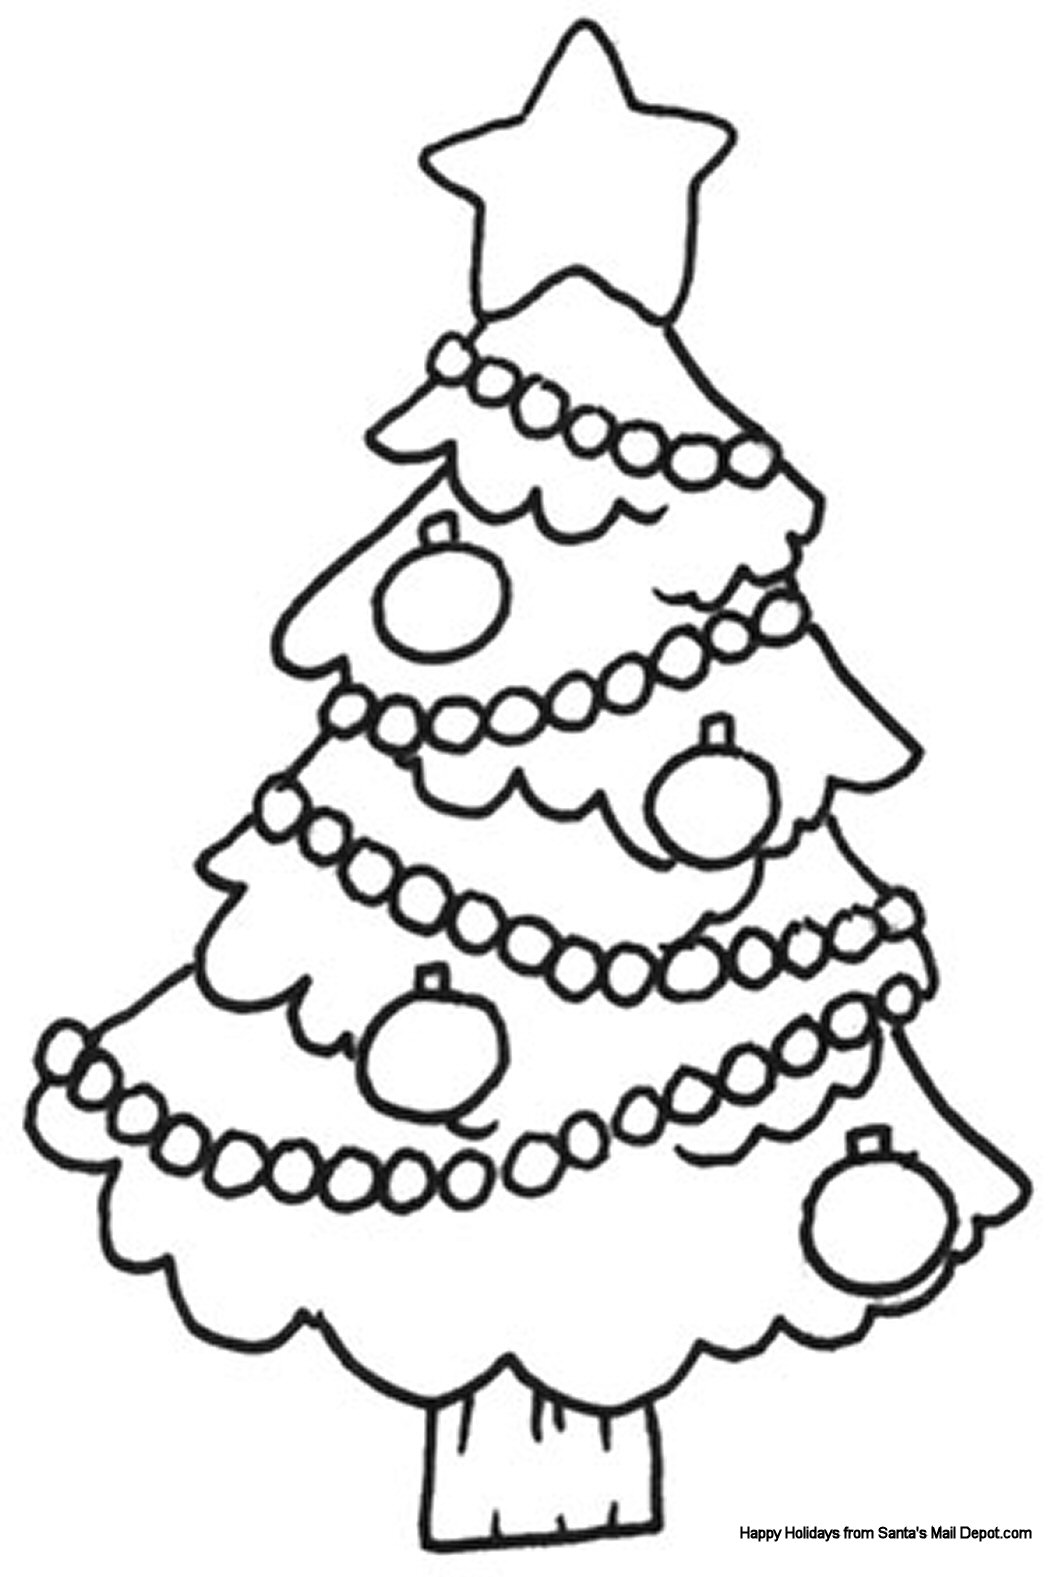 Phenomenal 1000 Images About Christmas Coloring Pages On Pinterest Easy Diy Christmas Decorations Tissureus